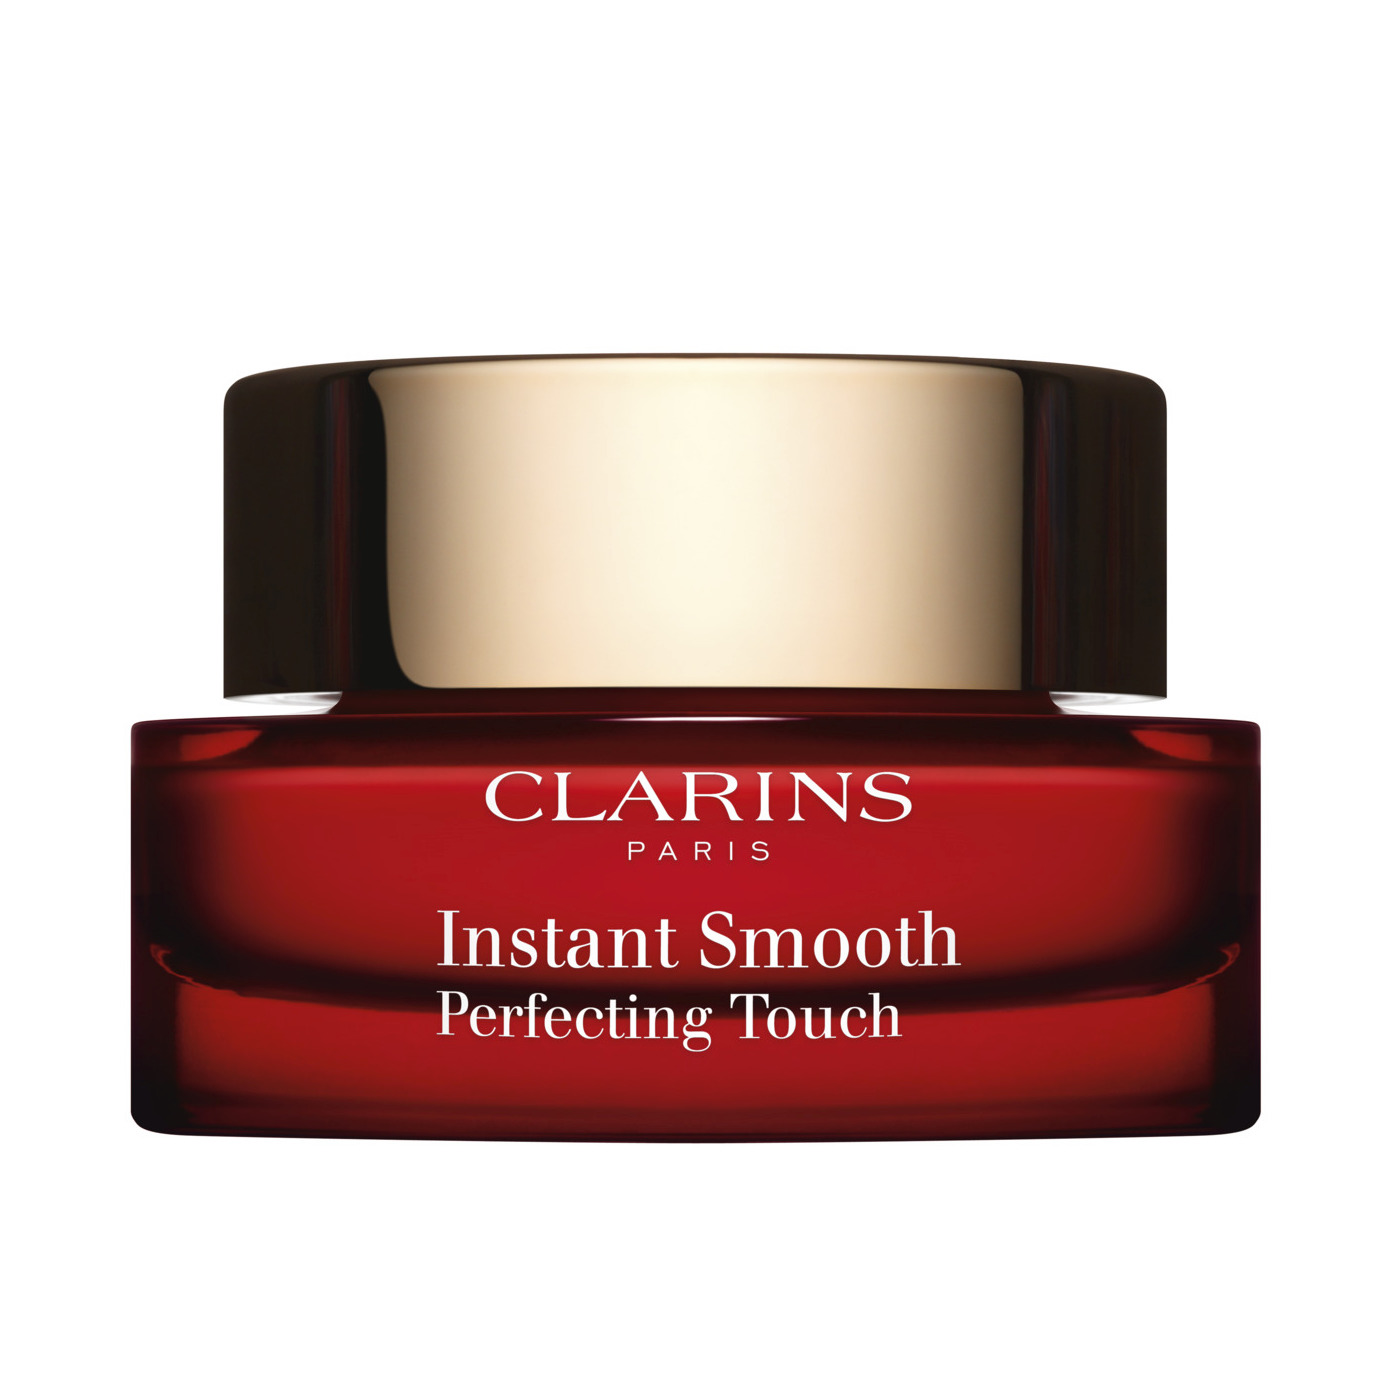 Extra-Firming Tightening Lift Botanical Serum by Clarins #4